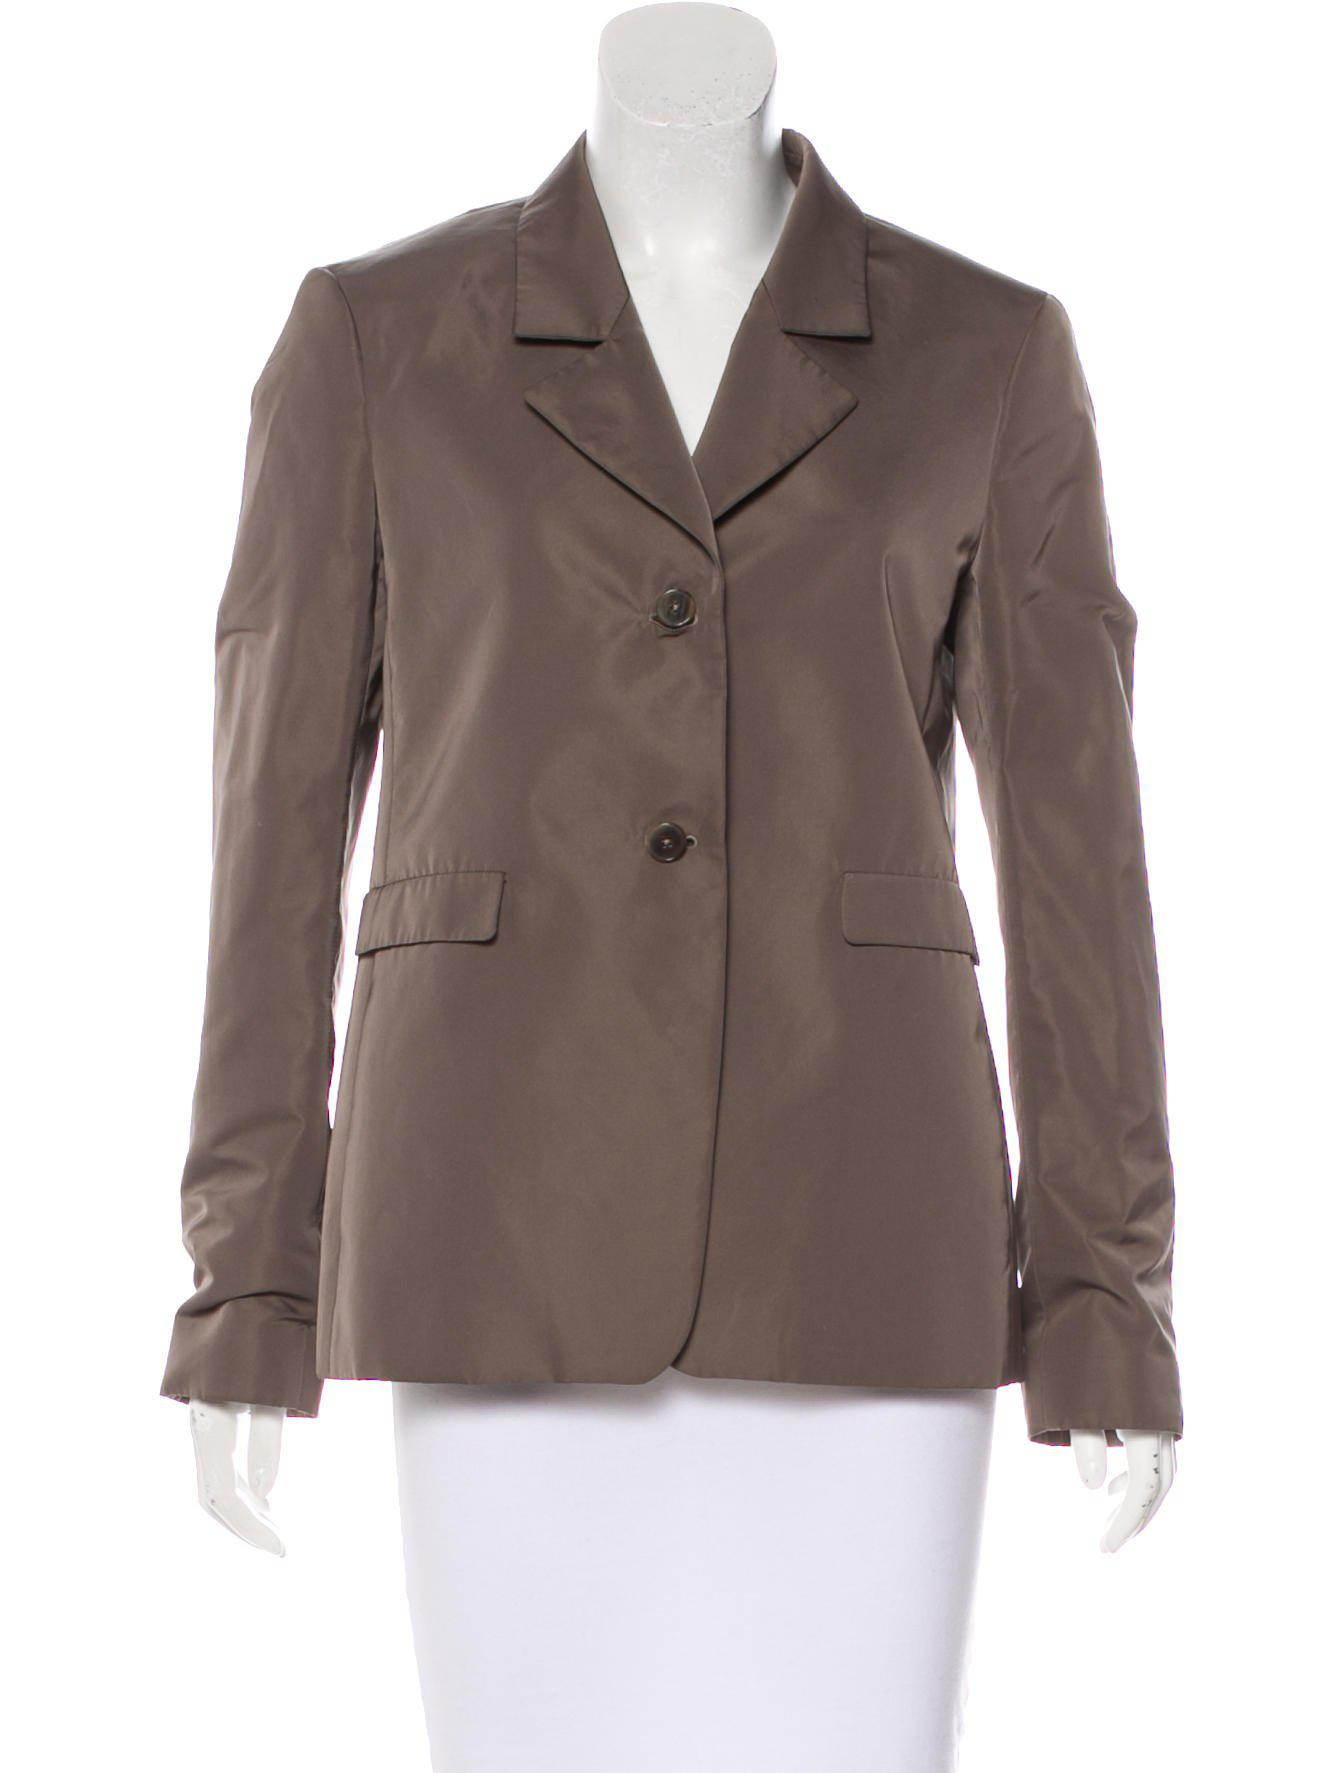 Clearance Get Authentic Maison Margiela Structured Notch-Lapel Blazer Clearance Real AYZeZ